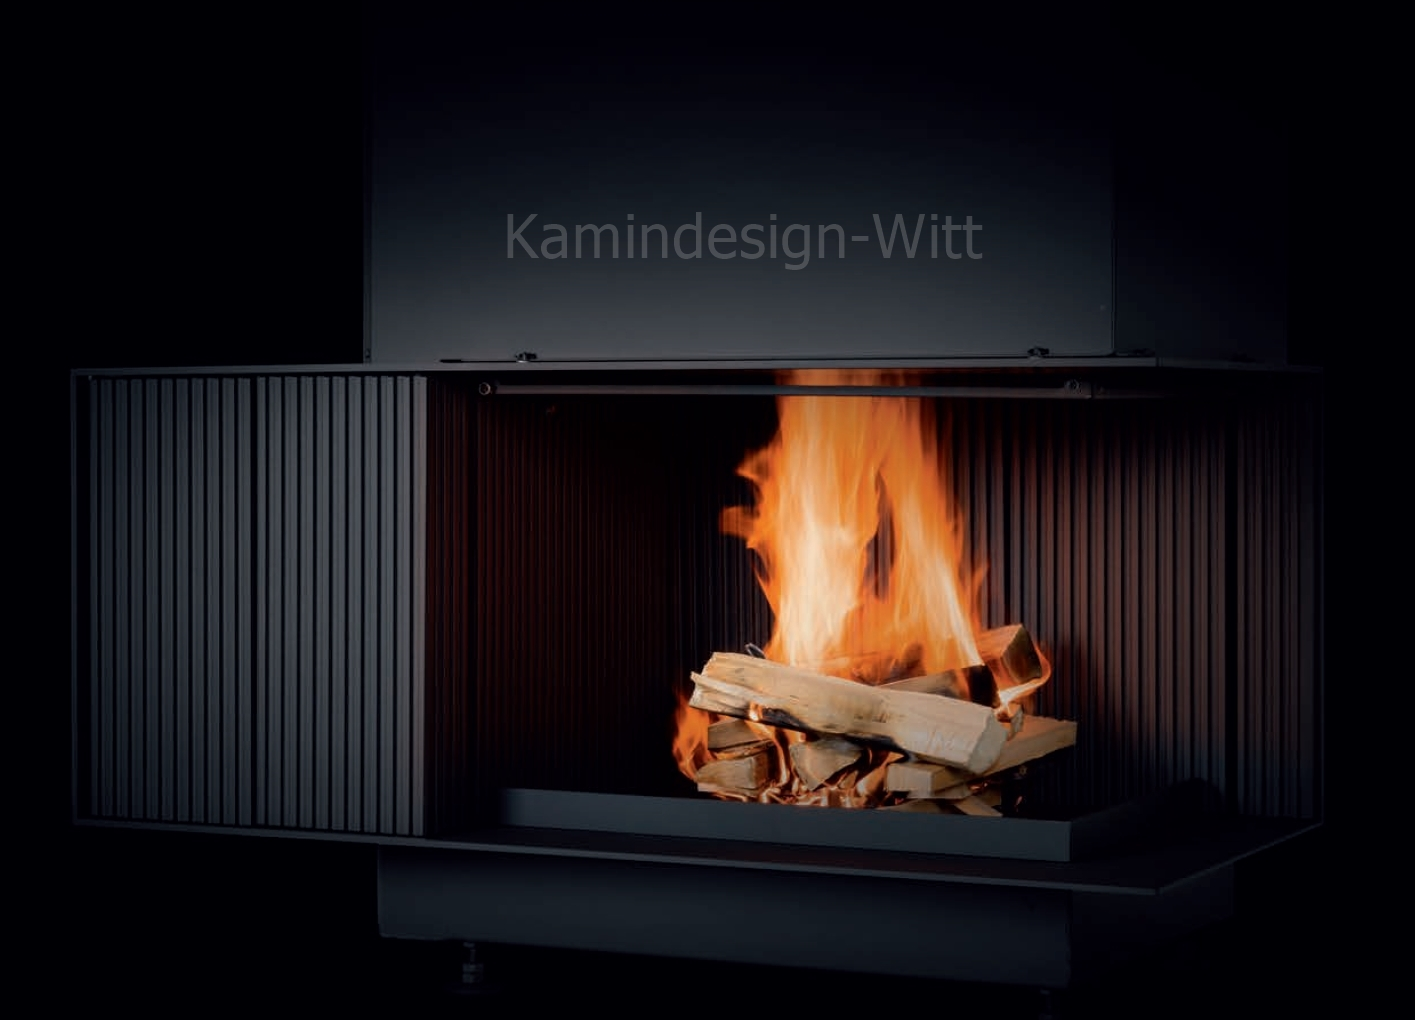 pures feuererlebnis der urfeuer kamin von brunner hotline 7 21 uhr 0177 530 9030. Black Bedroom Furniture Sets. Home Design Ideas